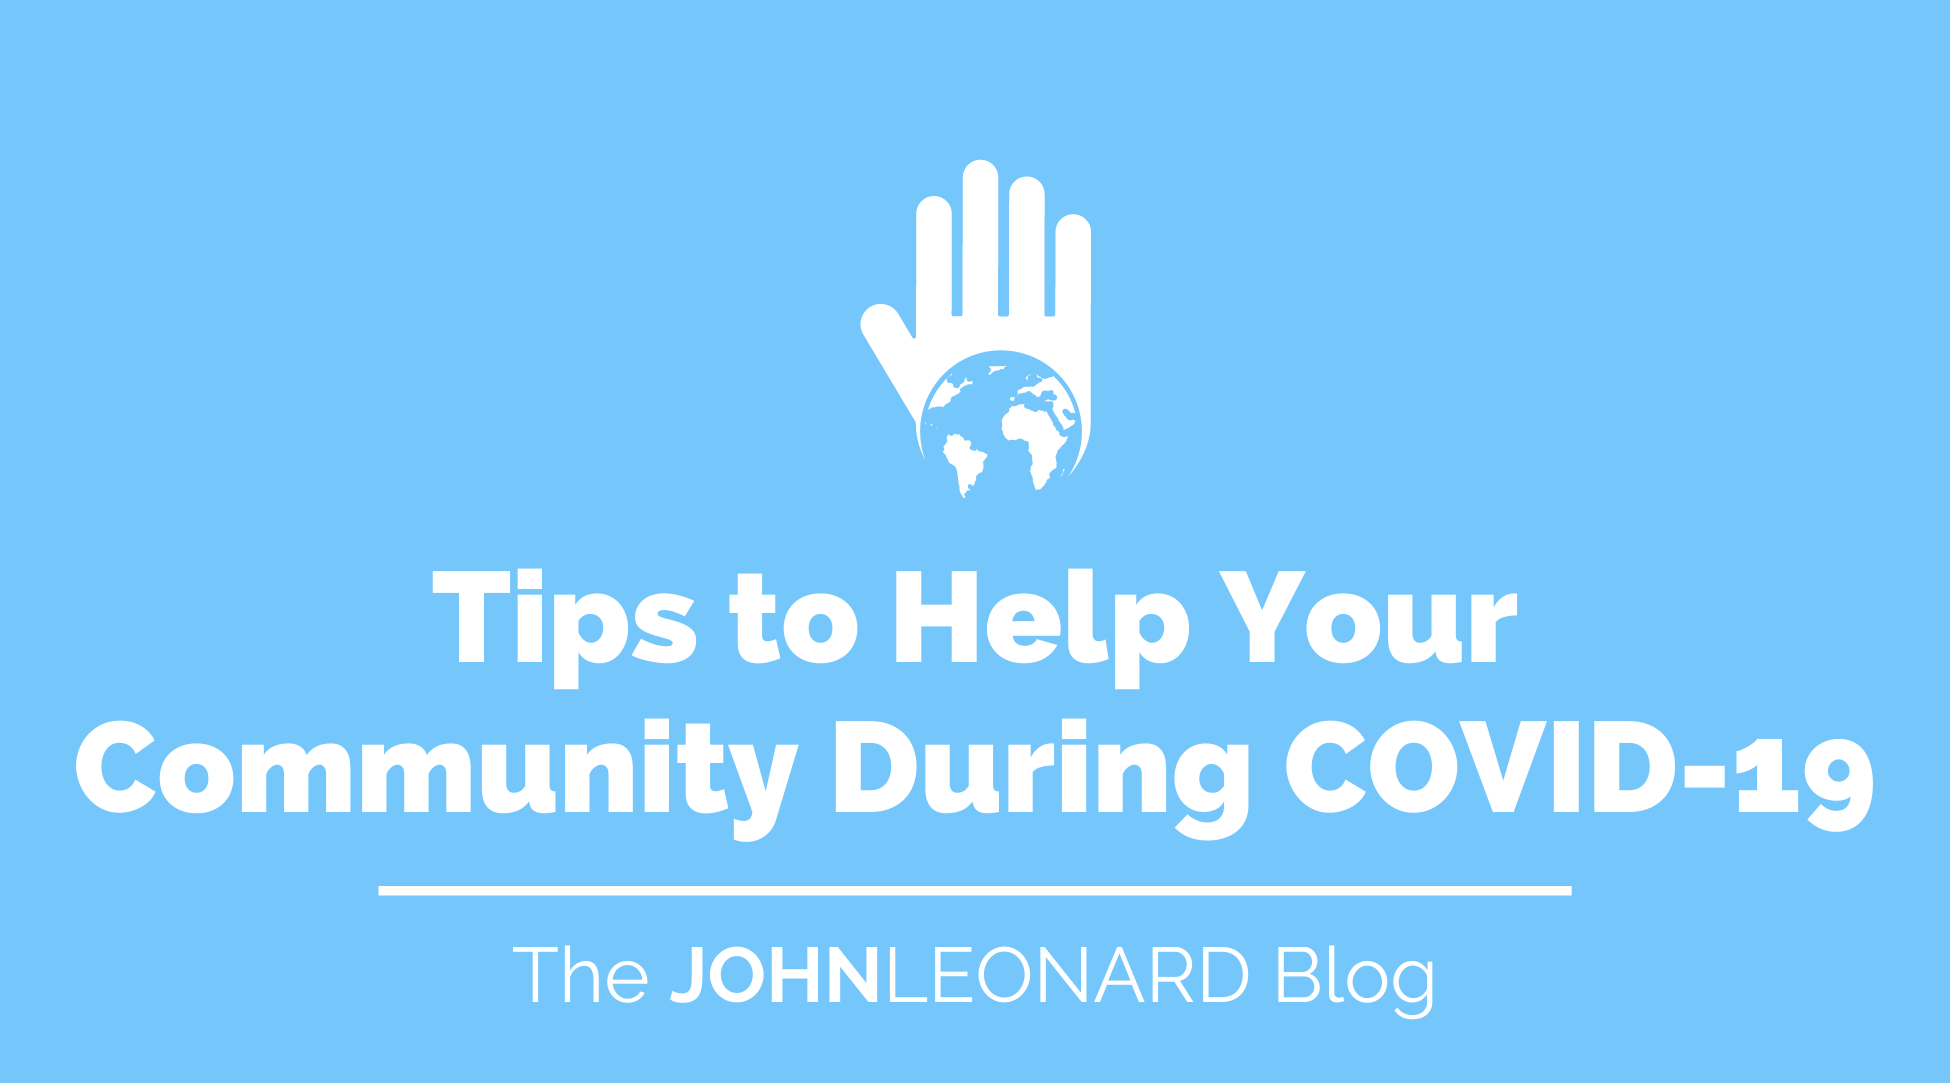 Tips to Help Your Community During COVID-19